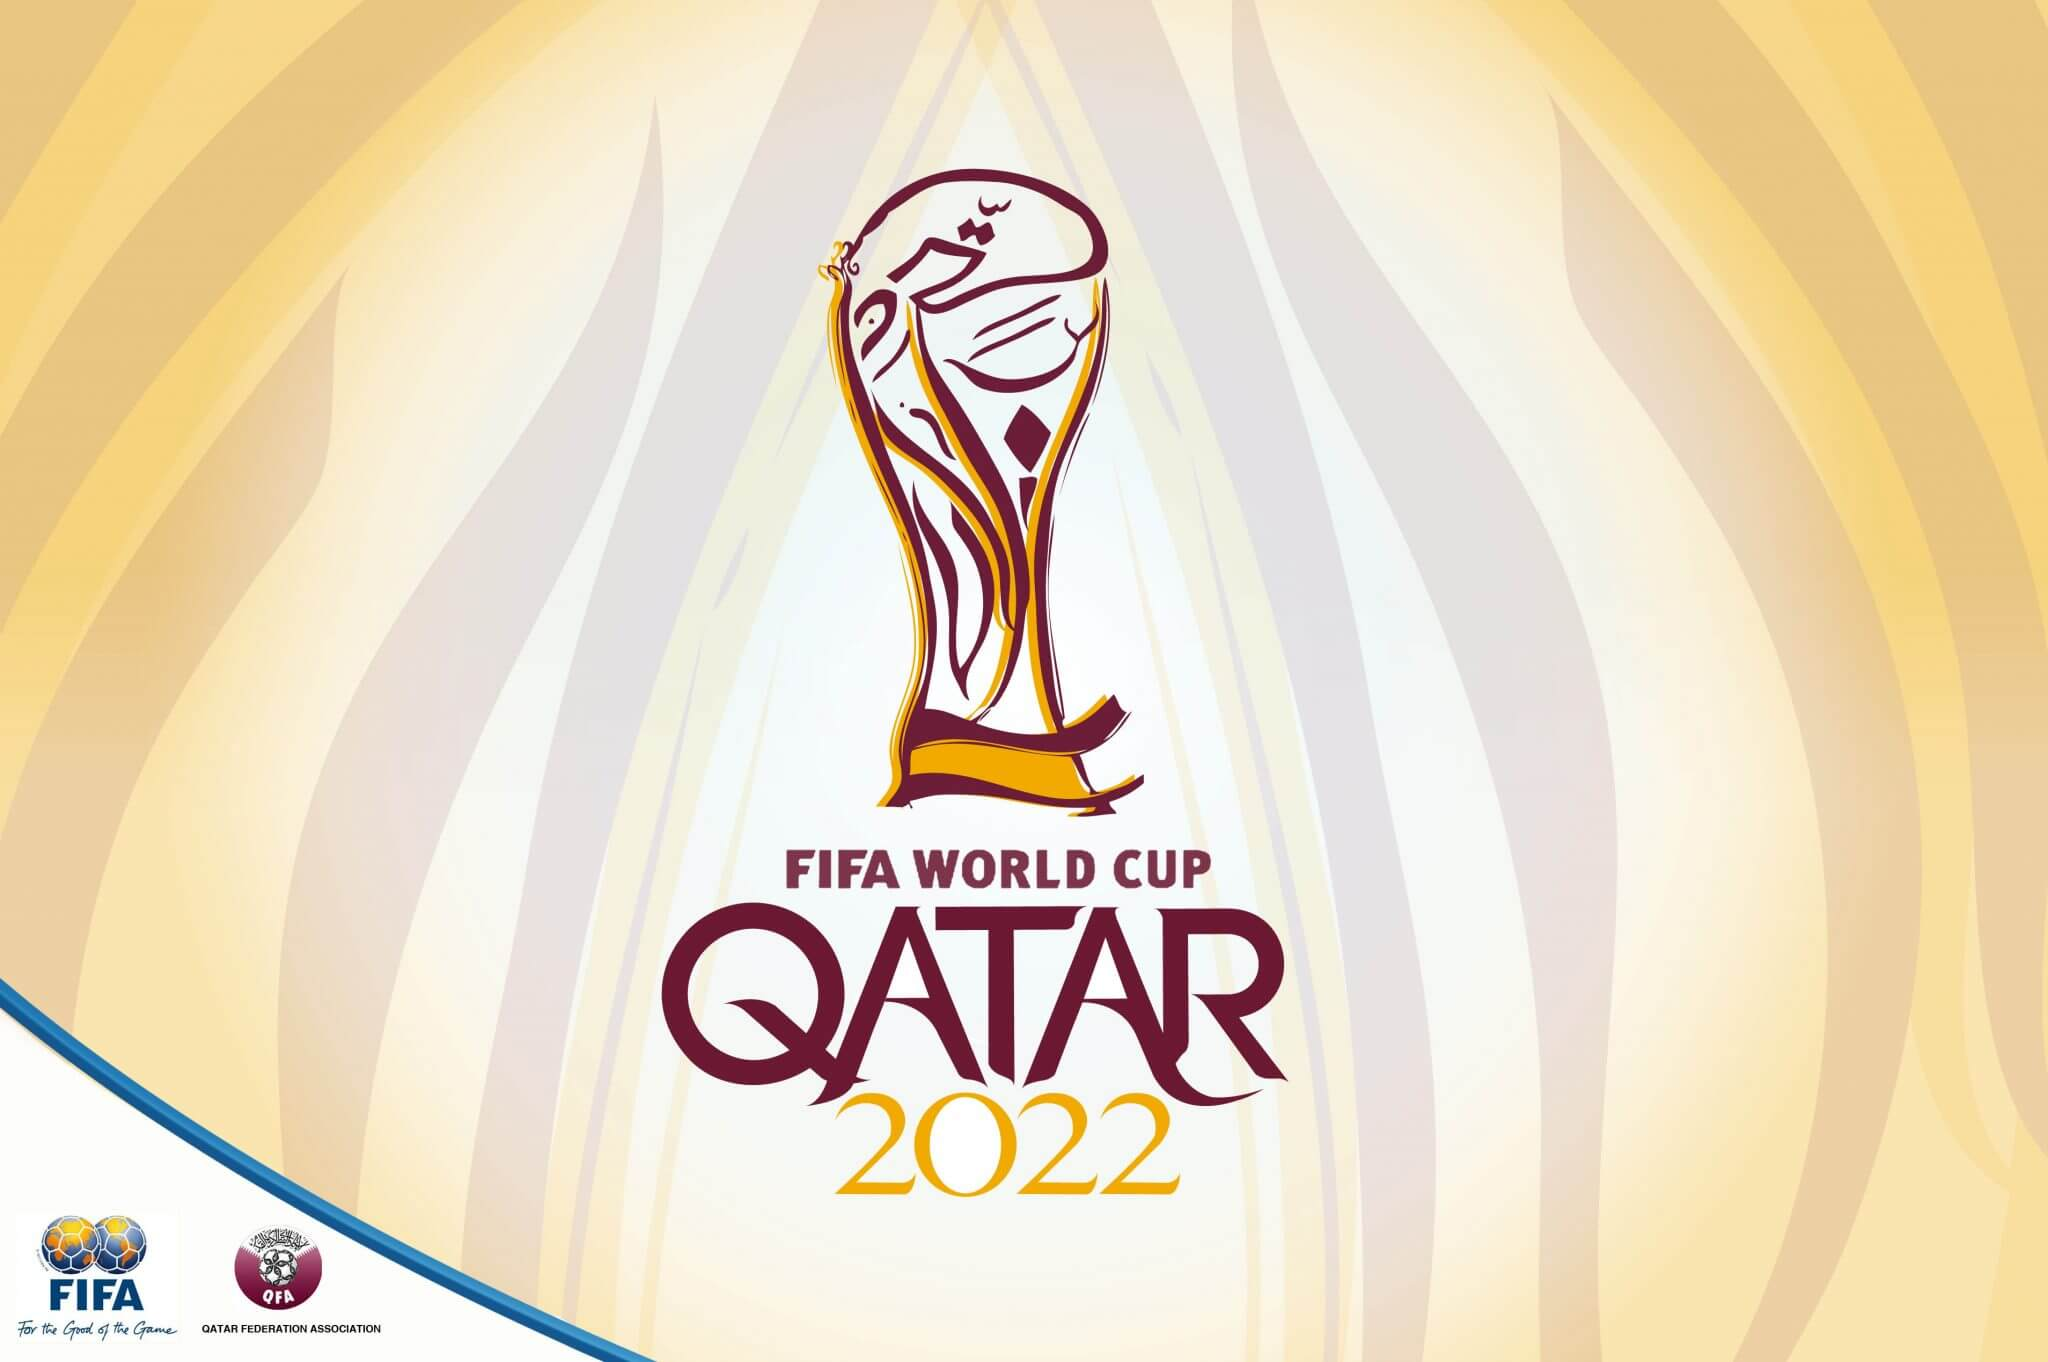 FIFA 2022 World Cup in Qatar will kick-off proceedings on November 21, 2022 at Al Bayt stadium, schedule released